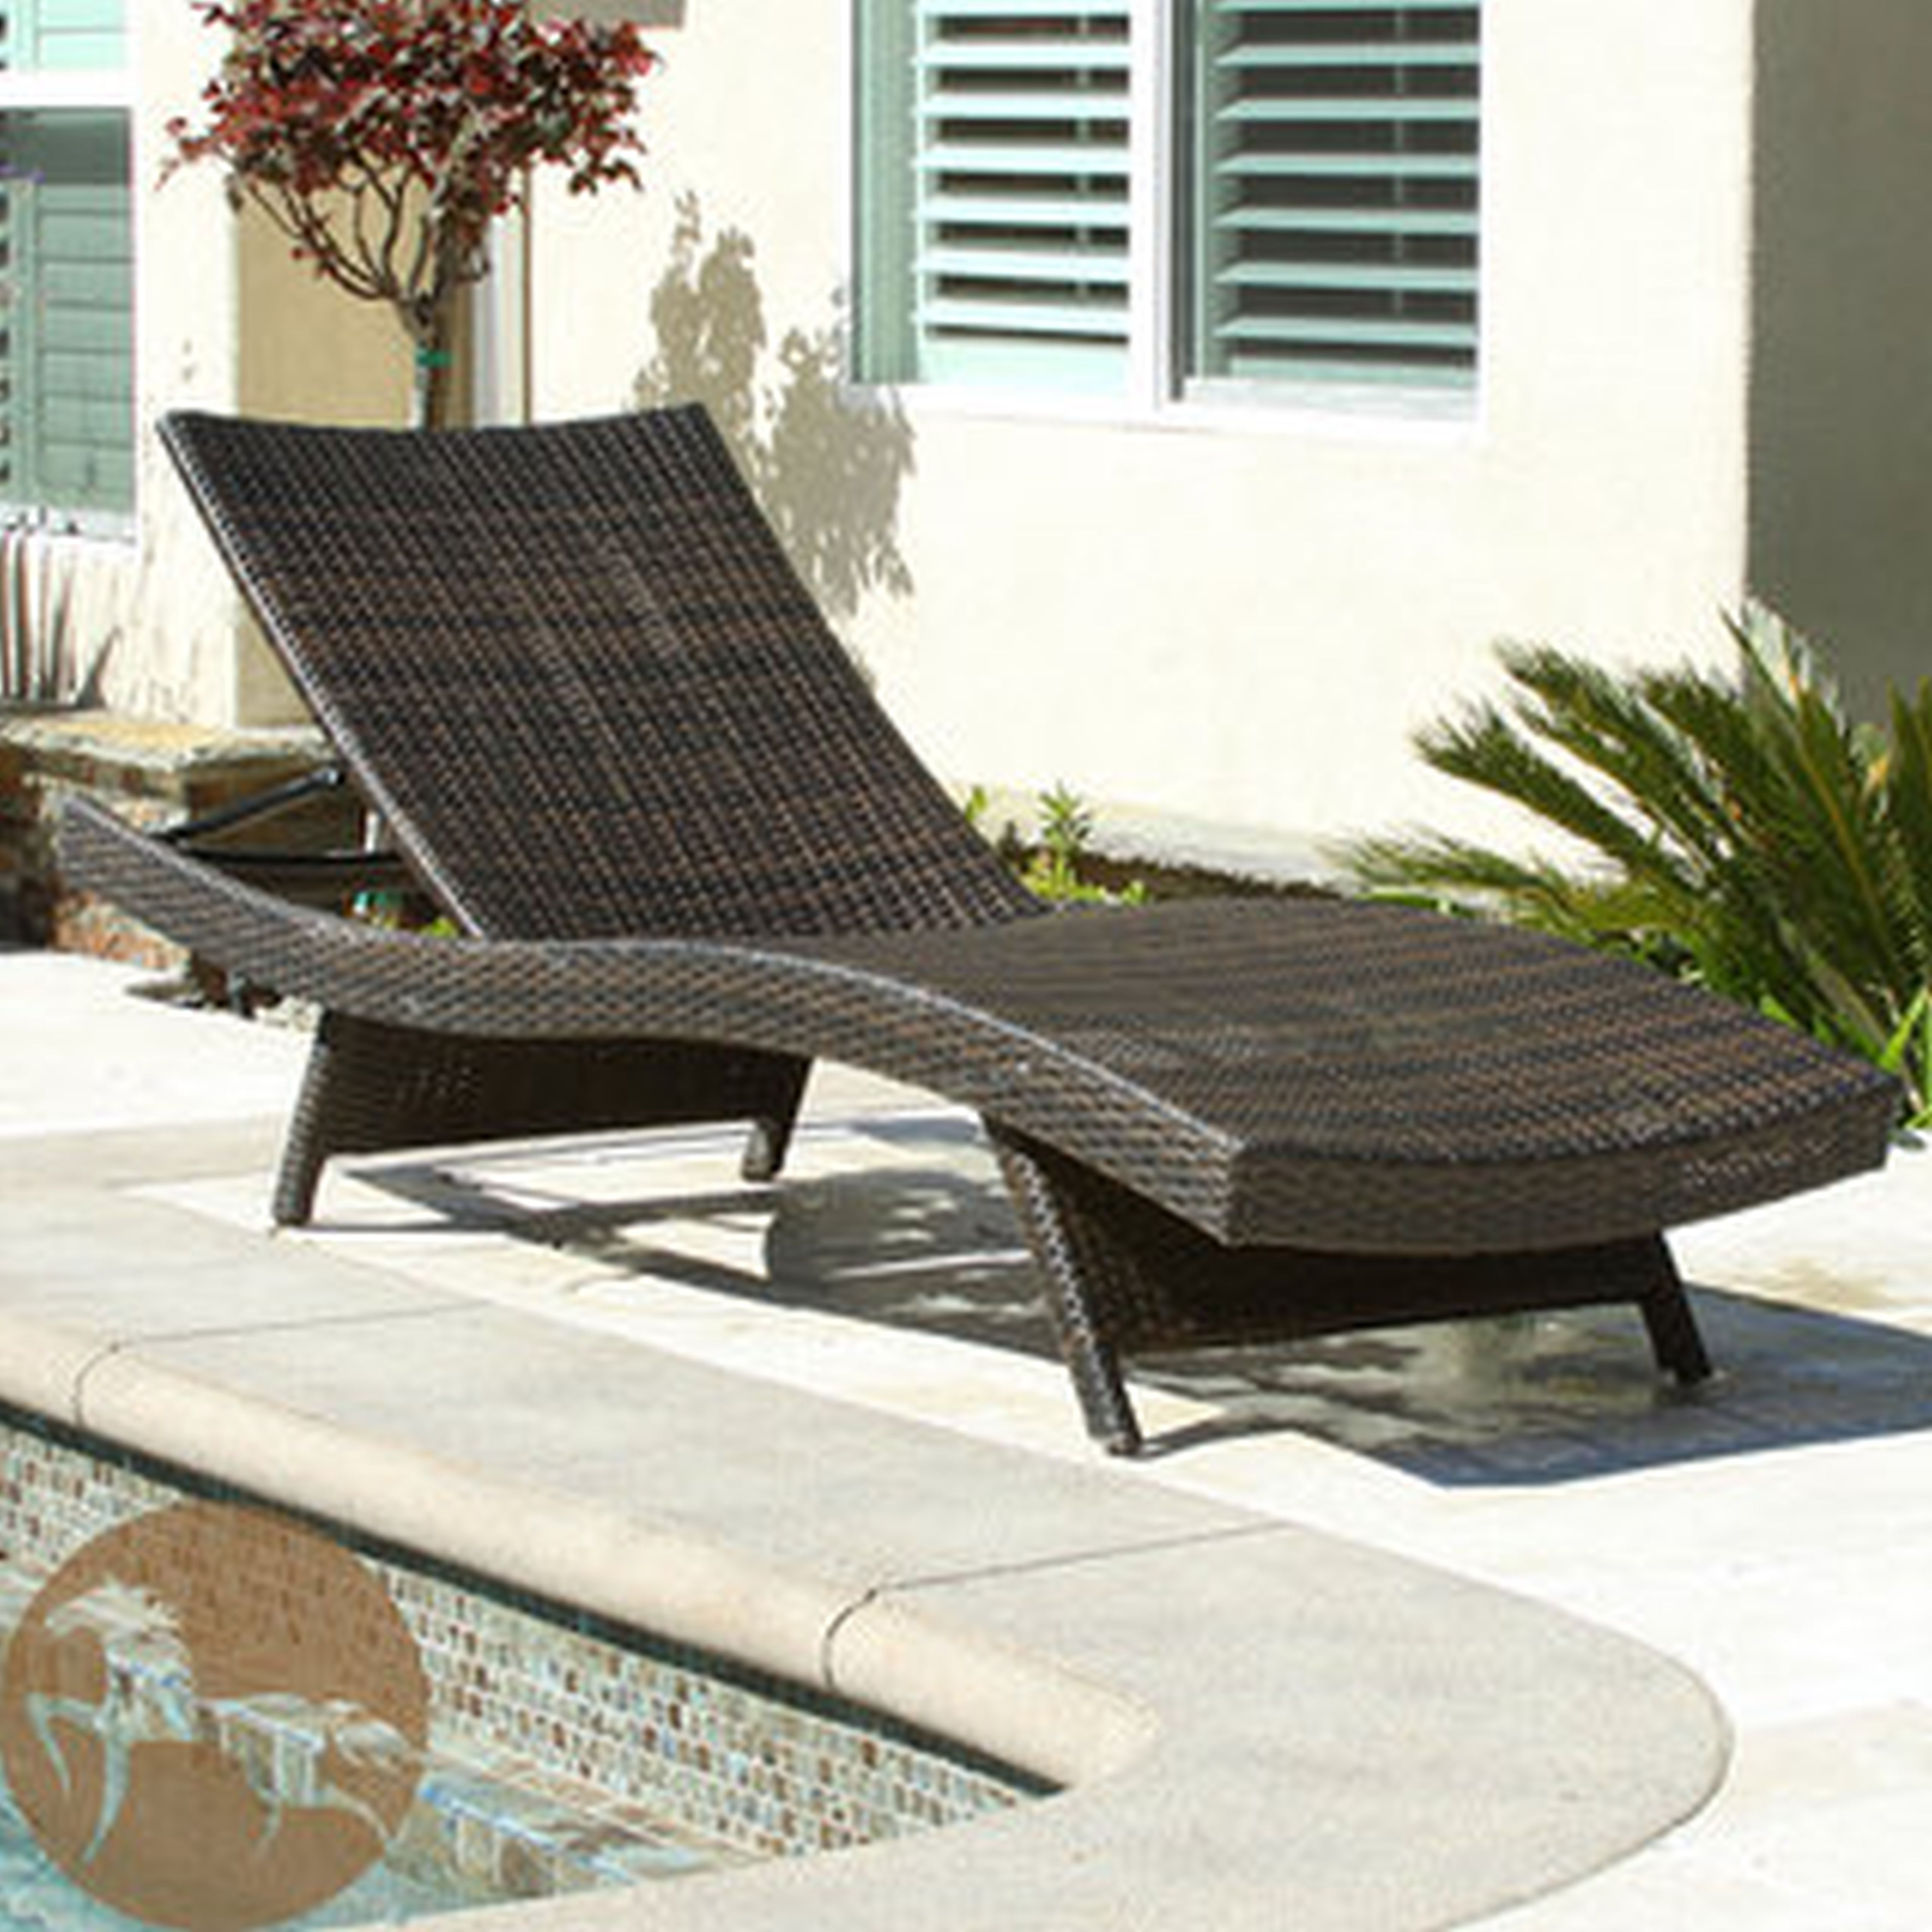 Chaise Lounges For Outdoor Patio In Most Recent Patio Chaise Lounge As The Must Have Furniture In Your Pool Deck (View 3 of 15)